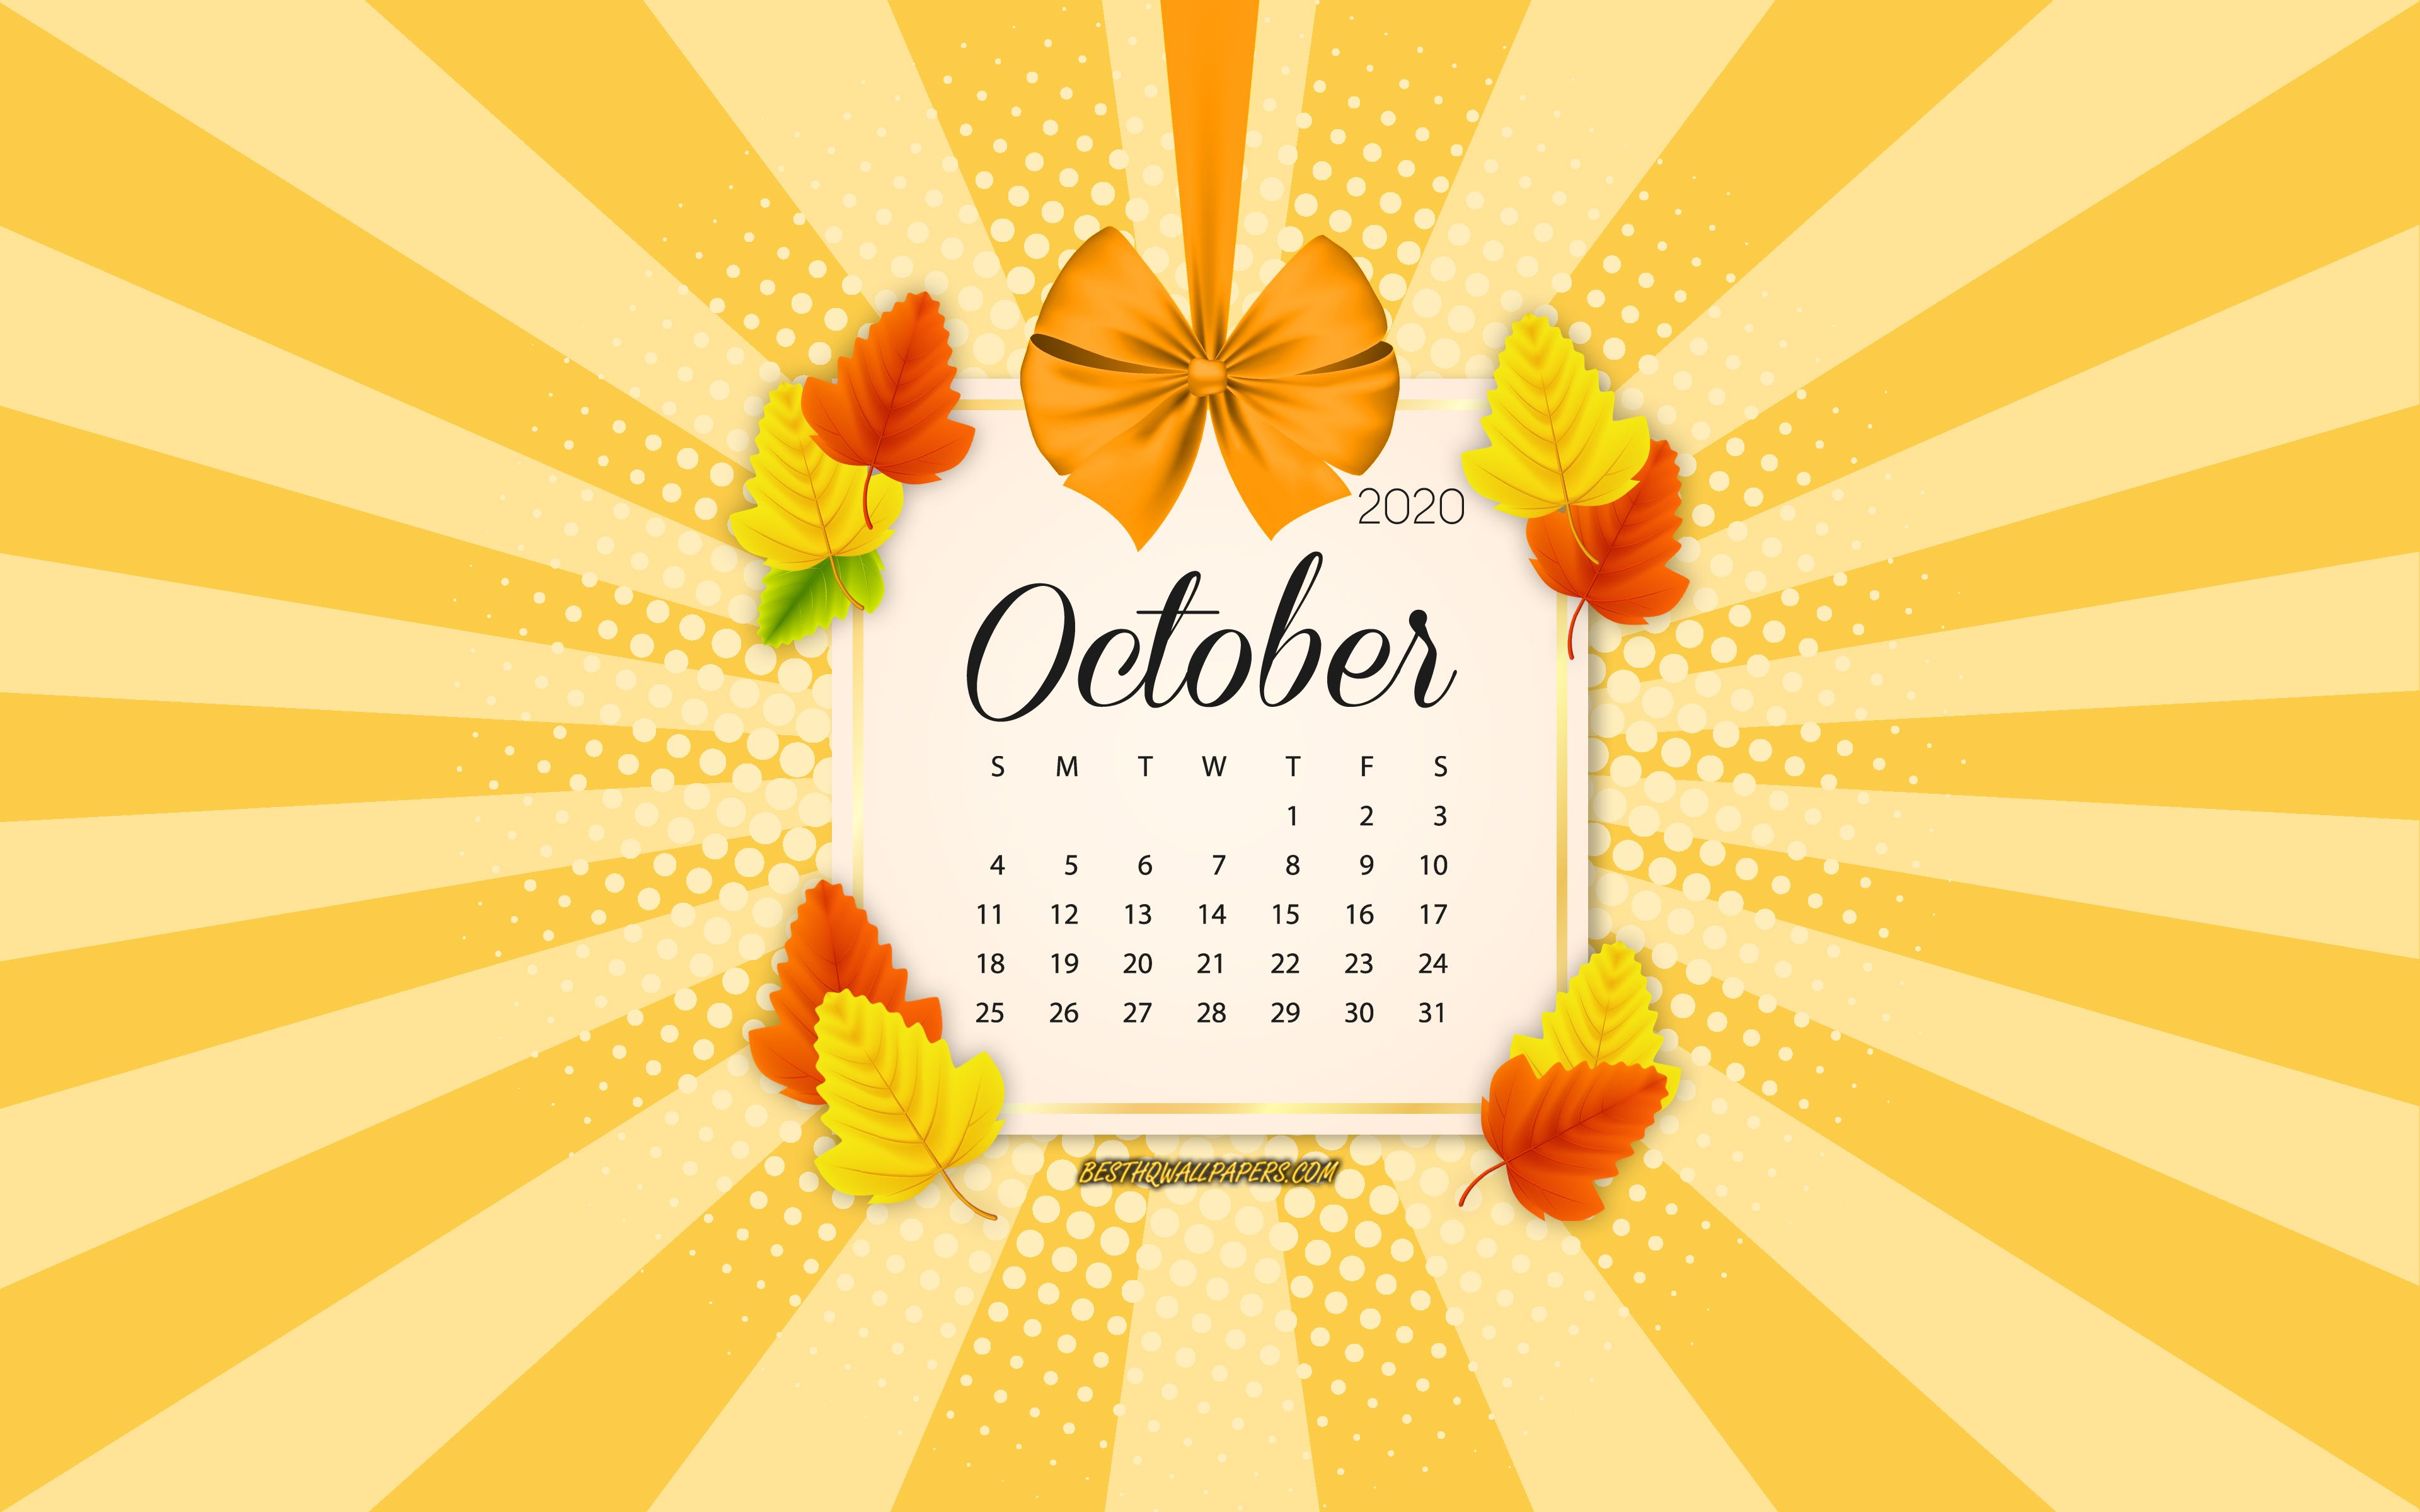 Download wallpapers 2020 October Calendar, orange background, autumn 2020 calendars, October, 2020 calendars, autumn leaves, retro style, October 2020 Calendar, calendar with leaves for desktop with resolution 3840x2400. High Quality HD pictures wallpapers